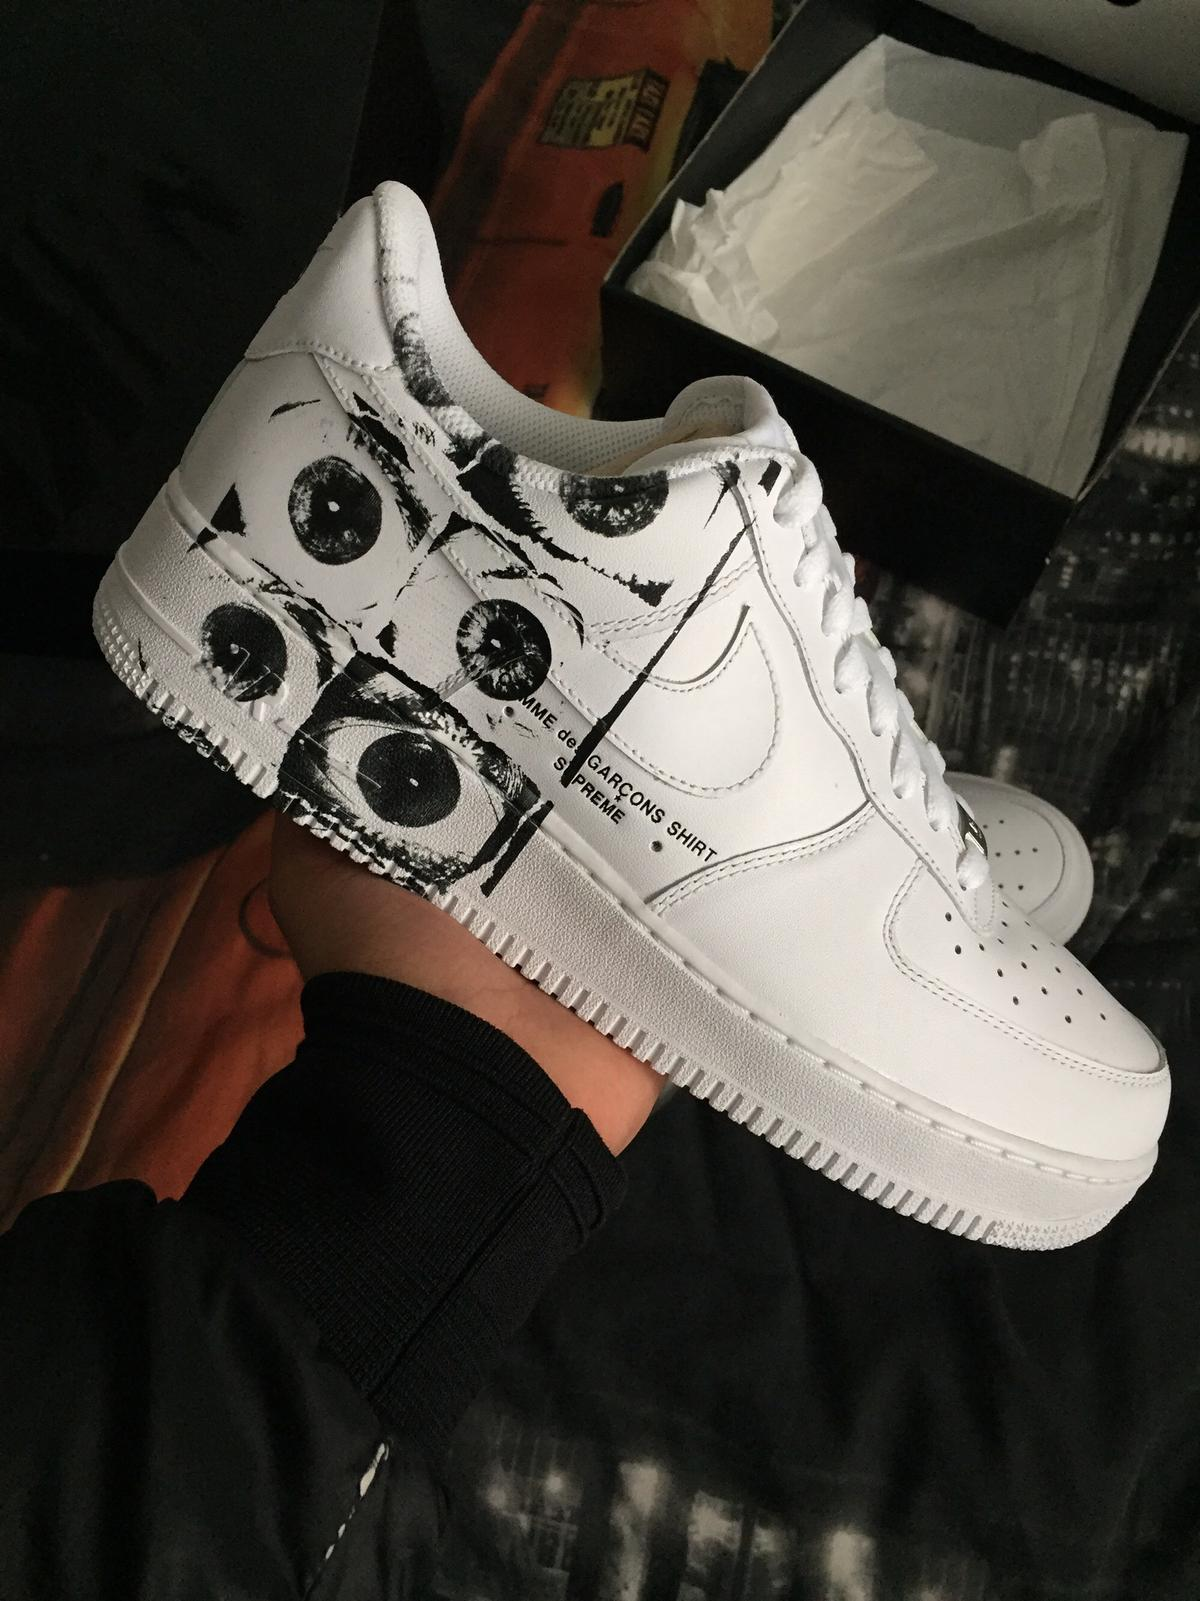 separation shoes 6879e 466c8 Supreme x CDG Air Force 1 brand new uk 9.5